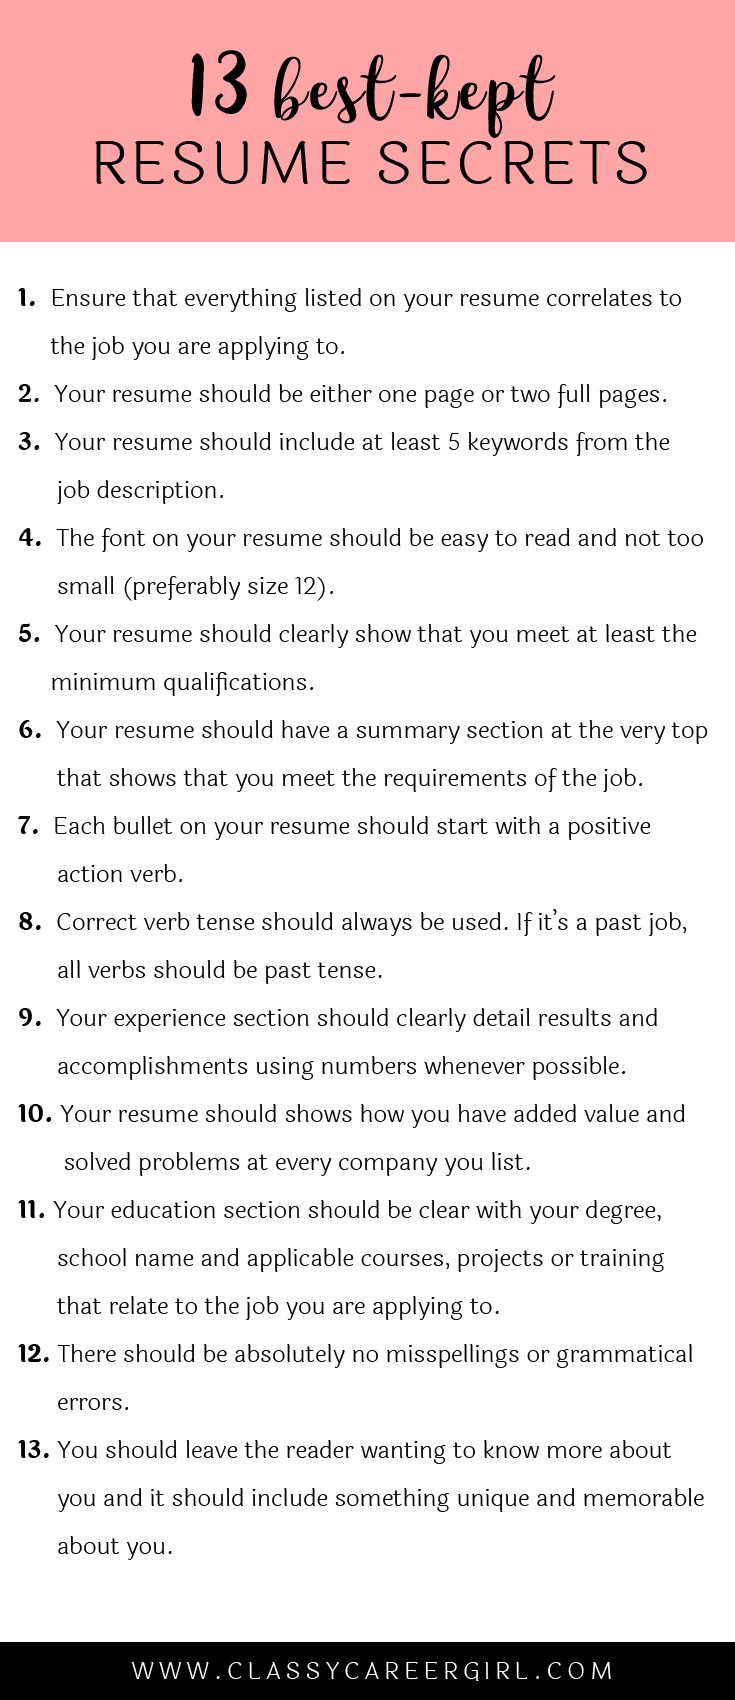 Opposenewapstandardsus  Winsome  Ideas About Resume On Pinterest  Cv Format Resume Cv And  With Likable Some Hiring Managers Will Toss Your Resume Out If You Dont Know These  With Amazing Job Description Resume Also Personal Trainer Resume Examples In Addition Resume Wordpress Theme And Find Resumes Online Free As Well As Student Sample Resume Additionally Game Designer Resume From Pinterestcom With Opposenewapstandardsus  Likable  Ideas About Resume On Pinterest  Cv Format Resume Cv And  With Amazing Some Hiring Managers Will Toss Your Resume Out If You Dont Know These  And Winsome Job Description Resume Also Personal Trainer Resume Examples In Addition Resume Wordpress Theme From Pinterestcom